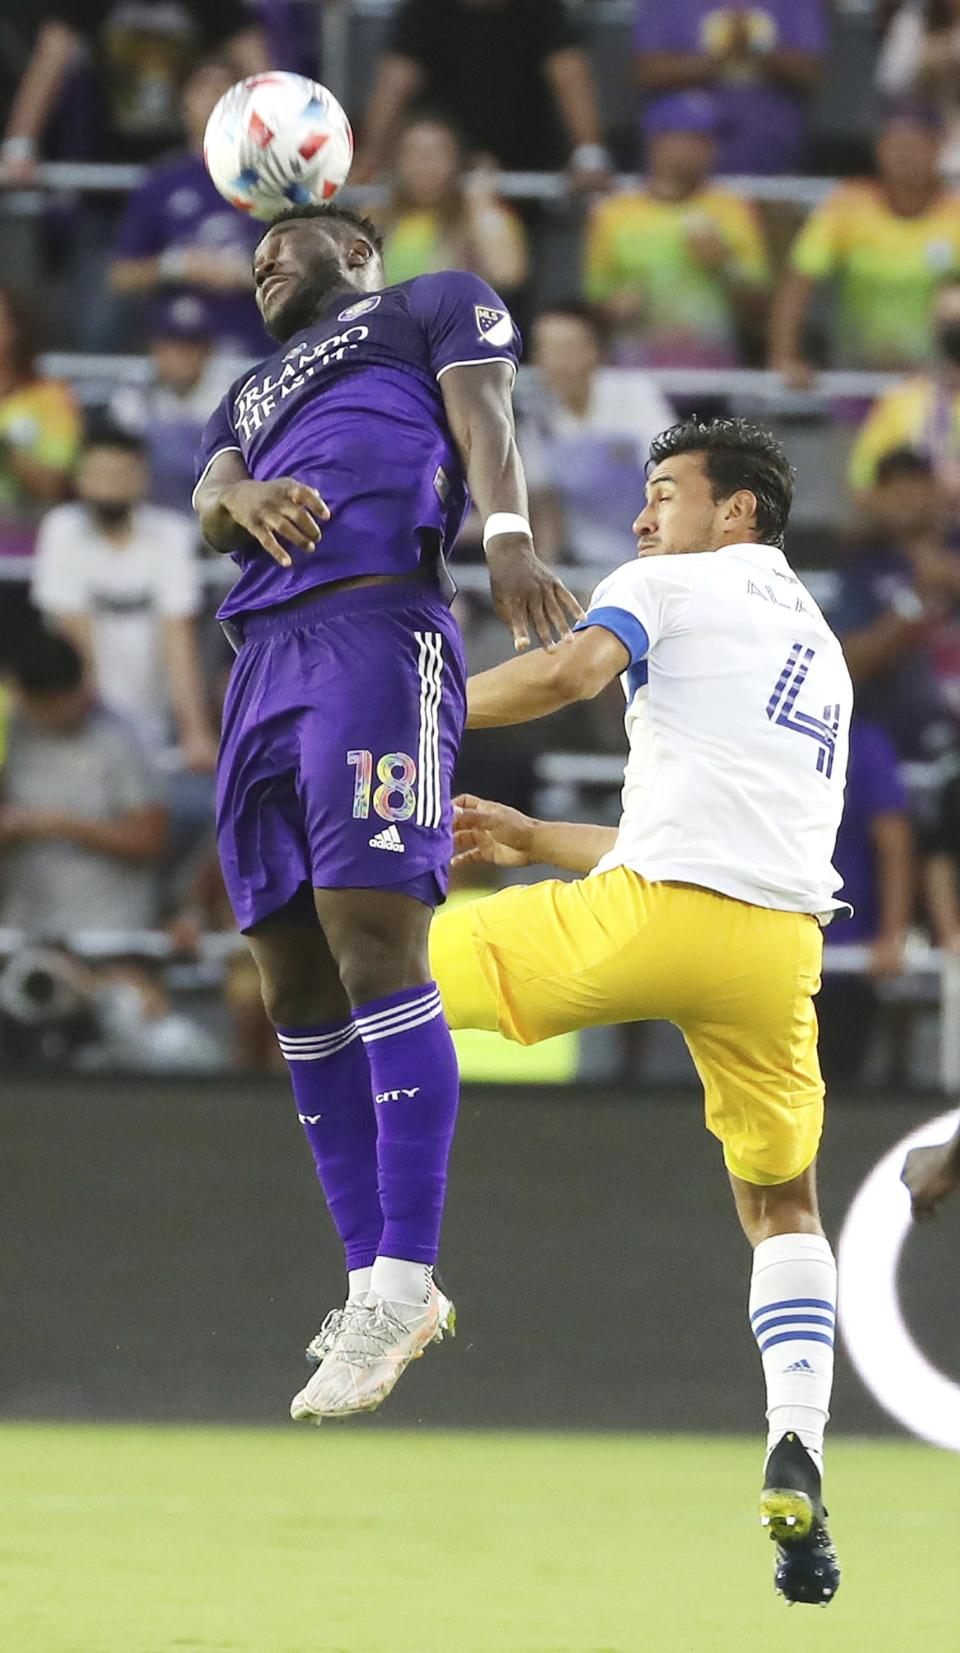 Orlando player Daryl Dike, left, leaps to head the ball beside San Jose player O. Alanis, right, during a MSL soccer match in Orlando, Fla., on Tuesday, June 22, 2021. (Stephen M. Dowell /Orlando Sentinel via AP)